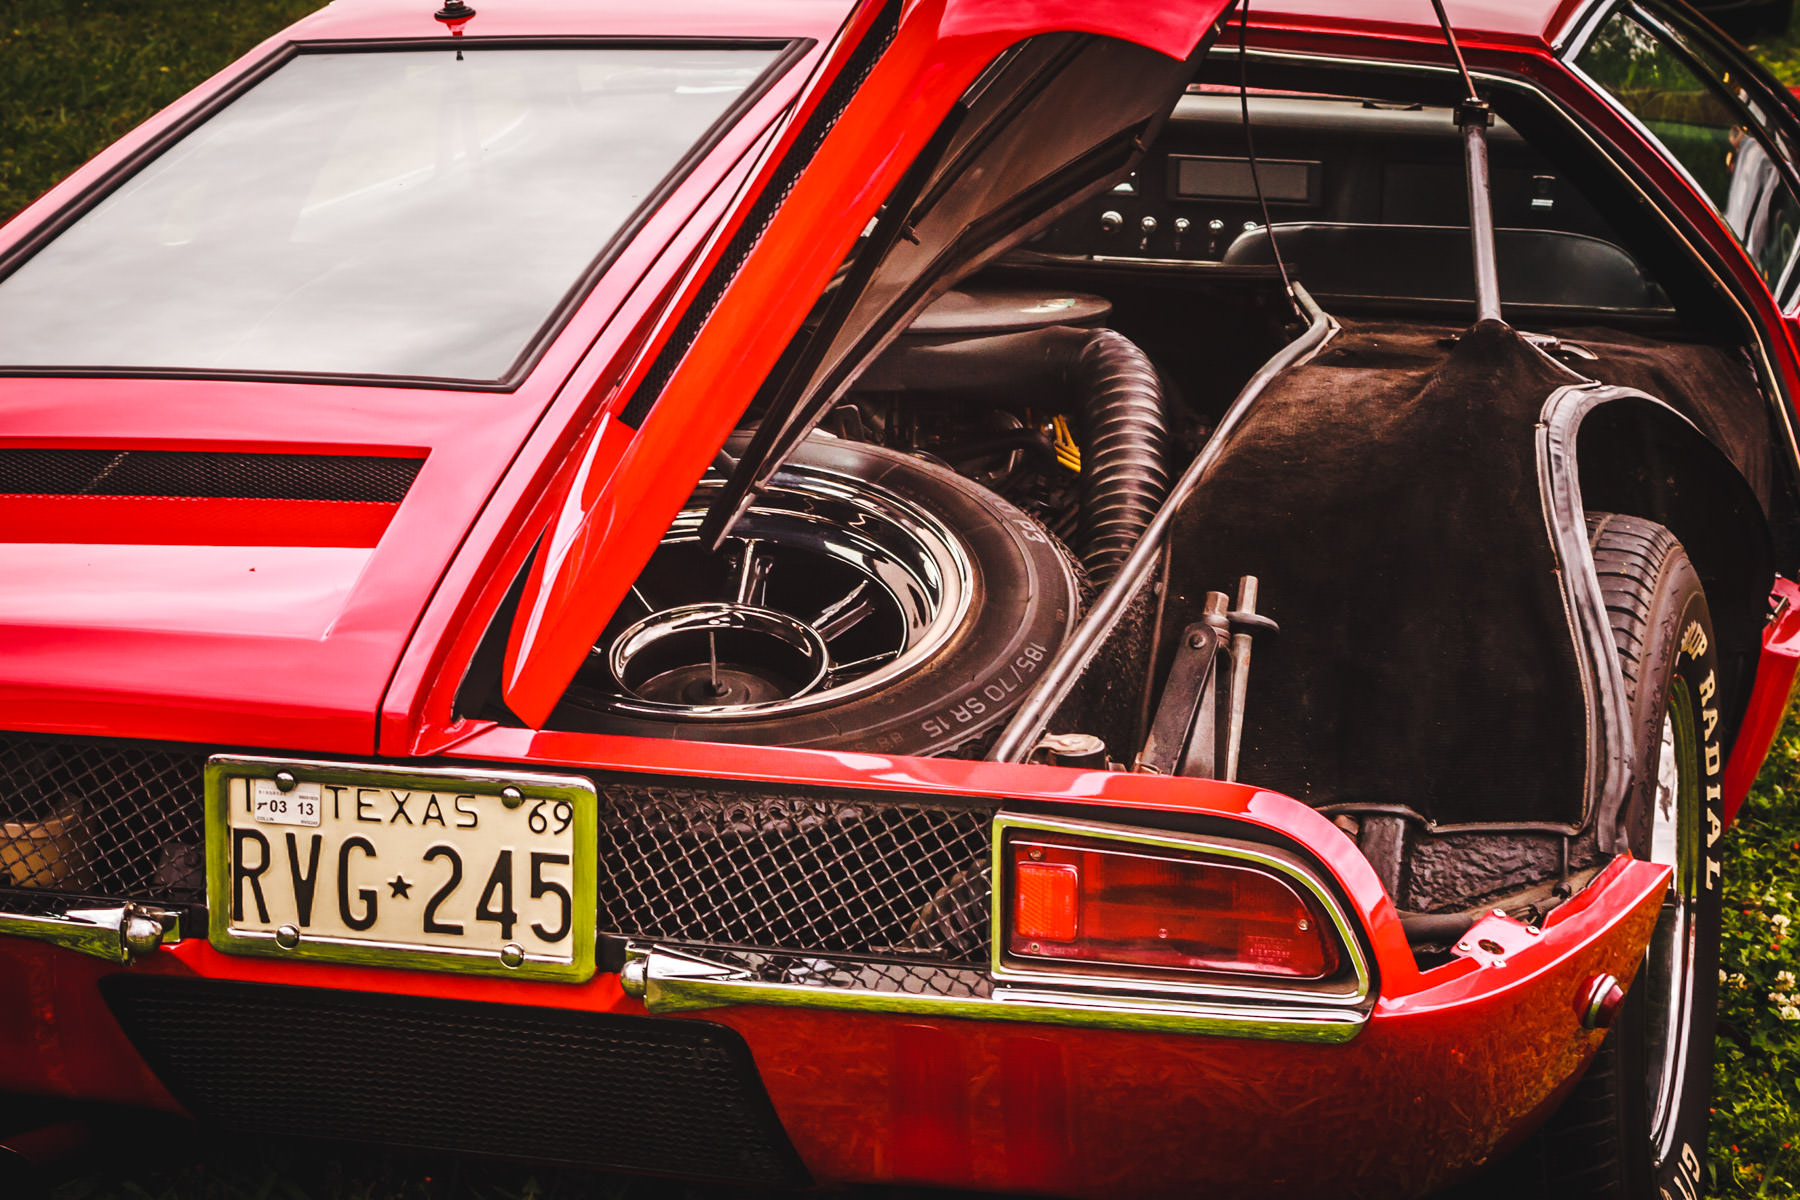 The right rear quarter of a DeTomaso Mangusta at Dallas' All British and European Car Day.